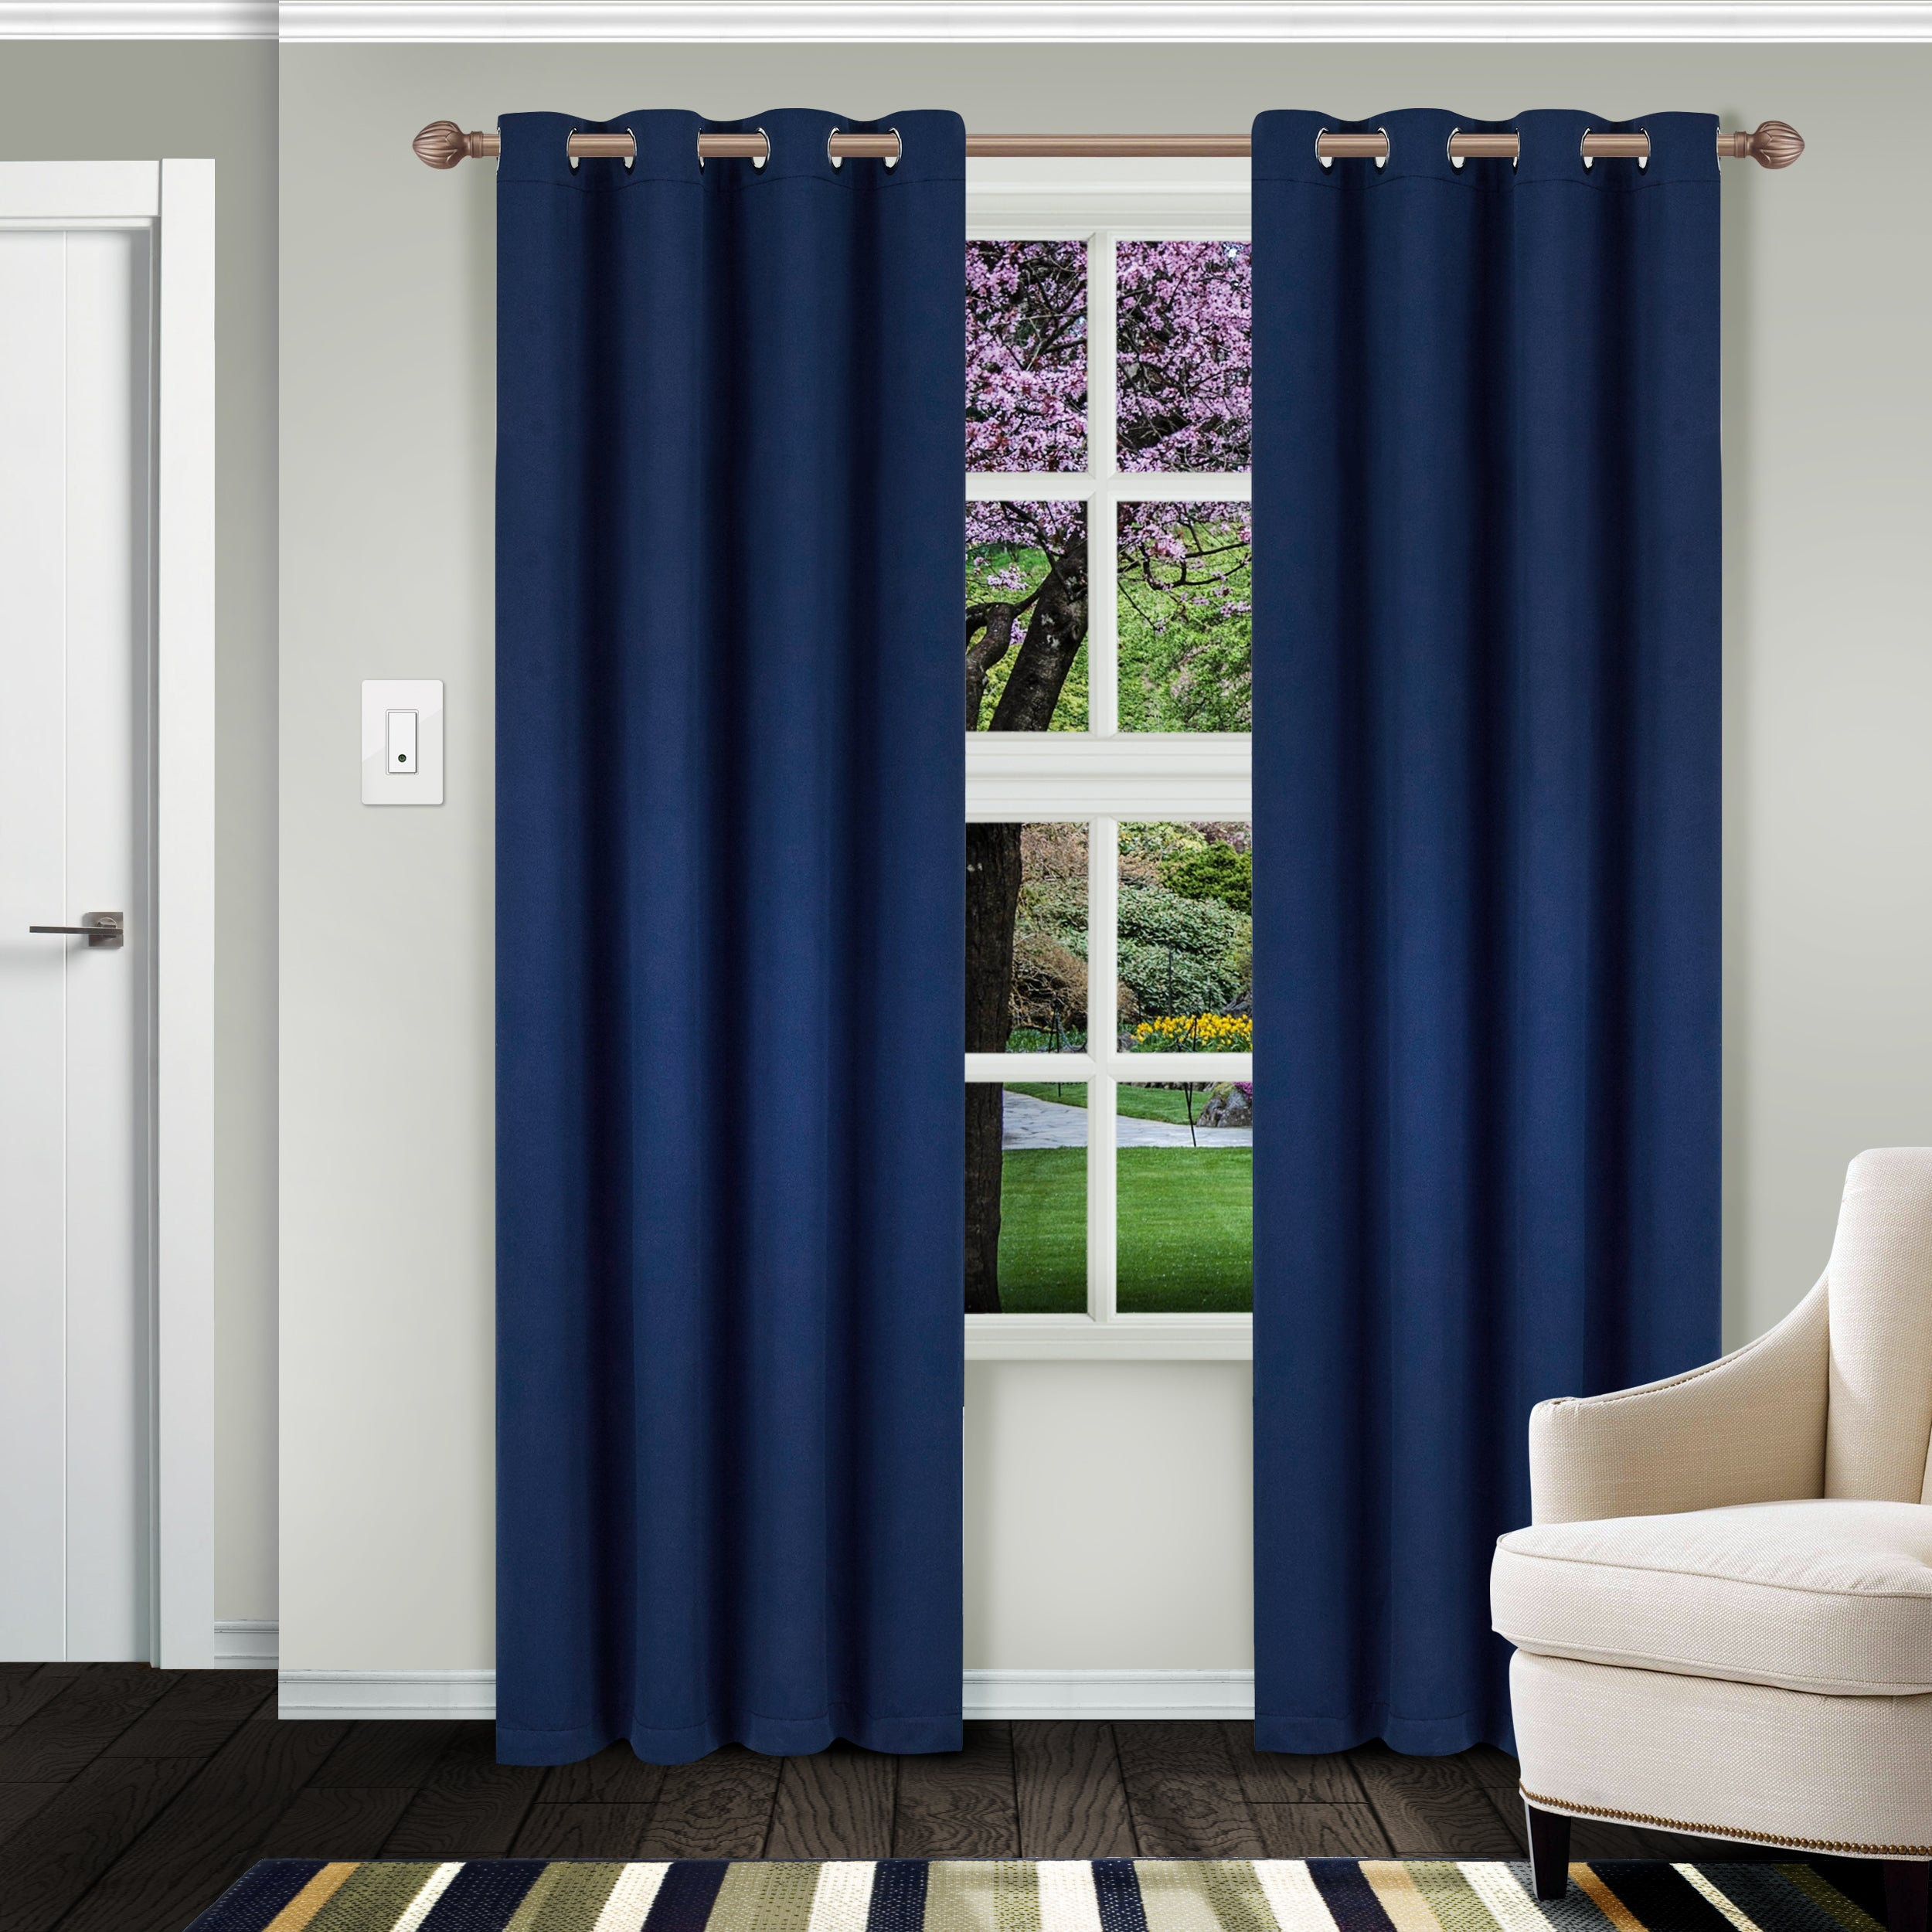 Superior Solid Insulated Thermal Blackout Grommet Curtain Panel Pair Inside Solid Thermal Insulated Blackout Curtain Panel Pairs (View 2 of 30)